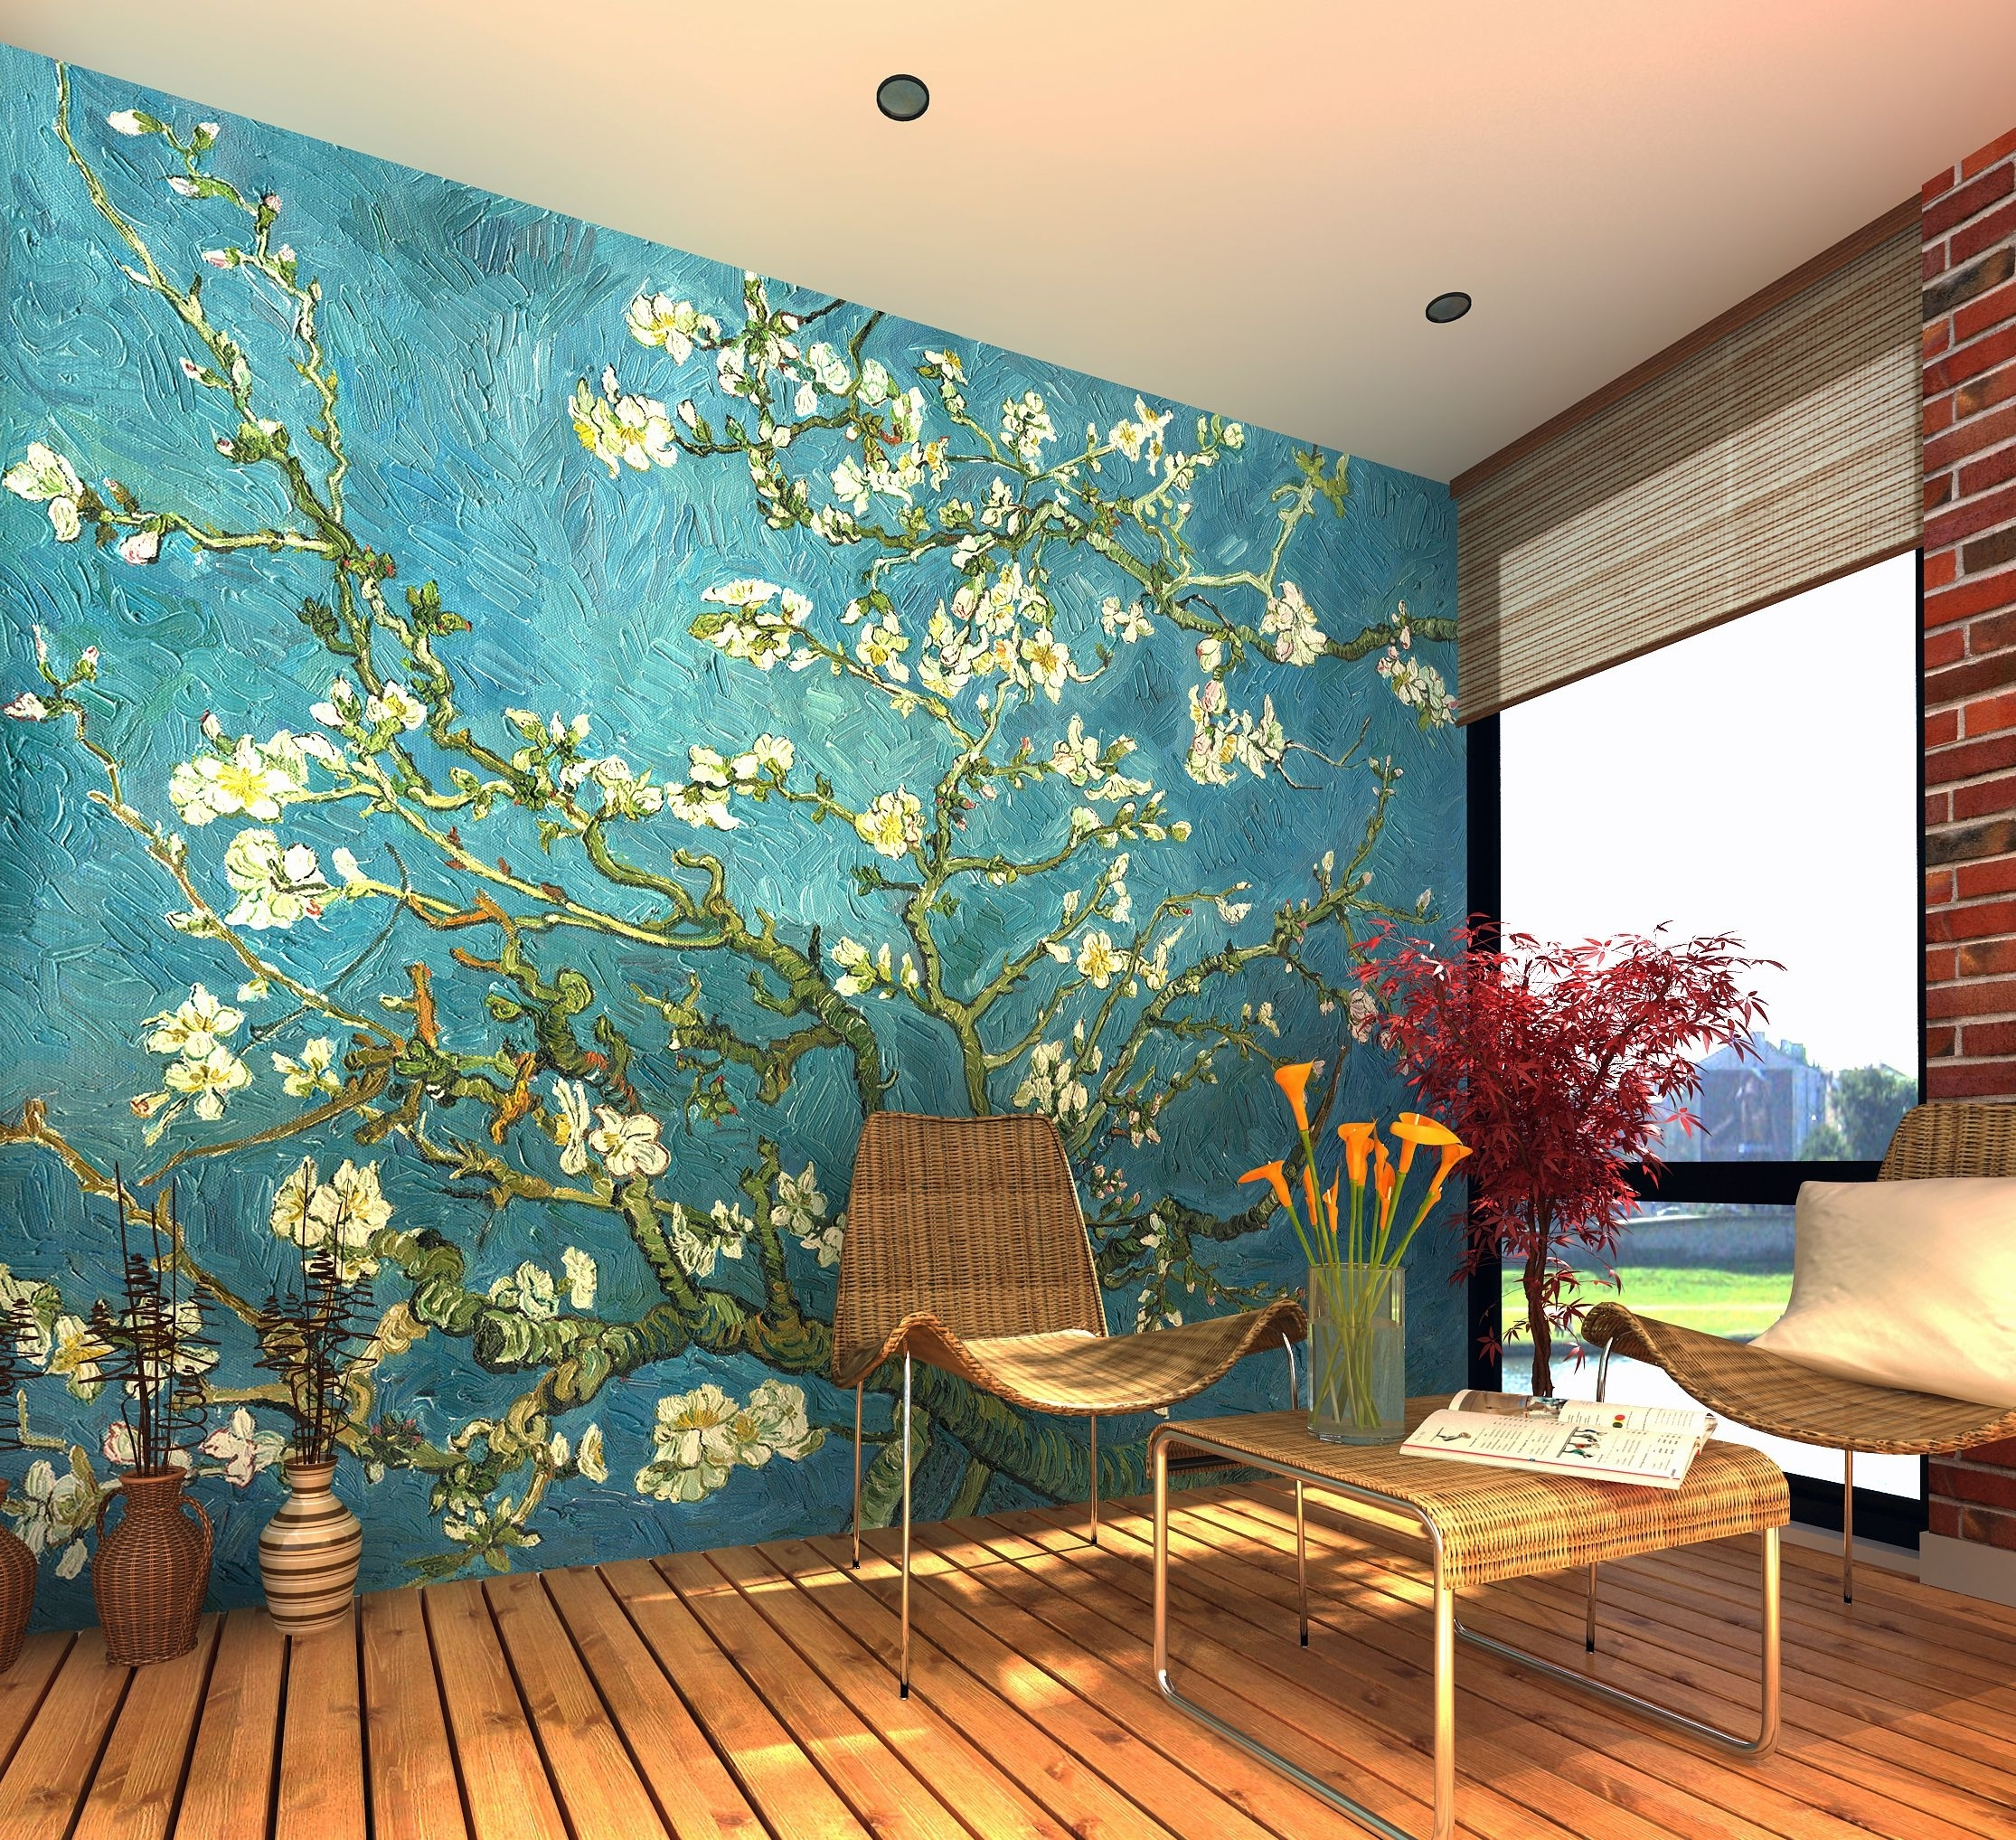 Van Gogh – Almond Blossom – Wall Mural, Wallpaper, Photowall, Home Regarding Most Up To Date Almond Blossoms Vincent Van Gogh Wall Art (View 13 of 20)